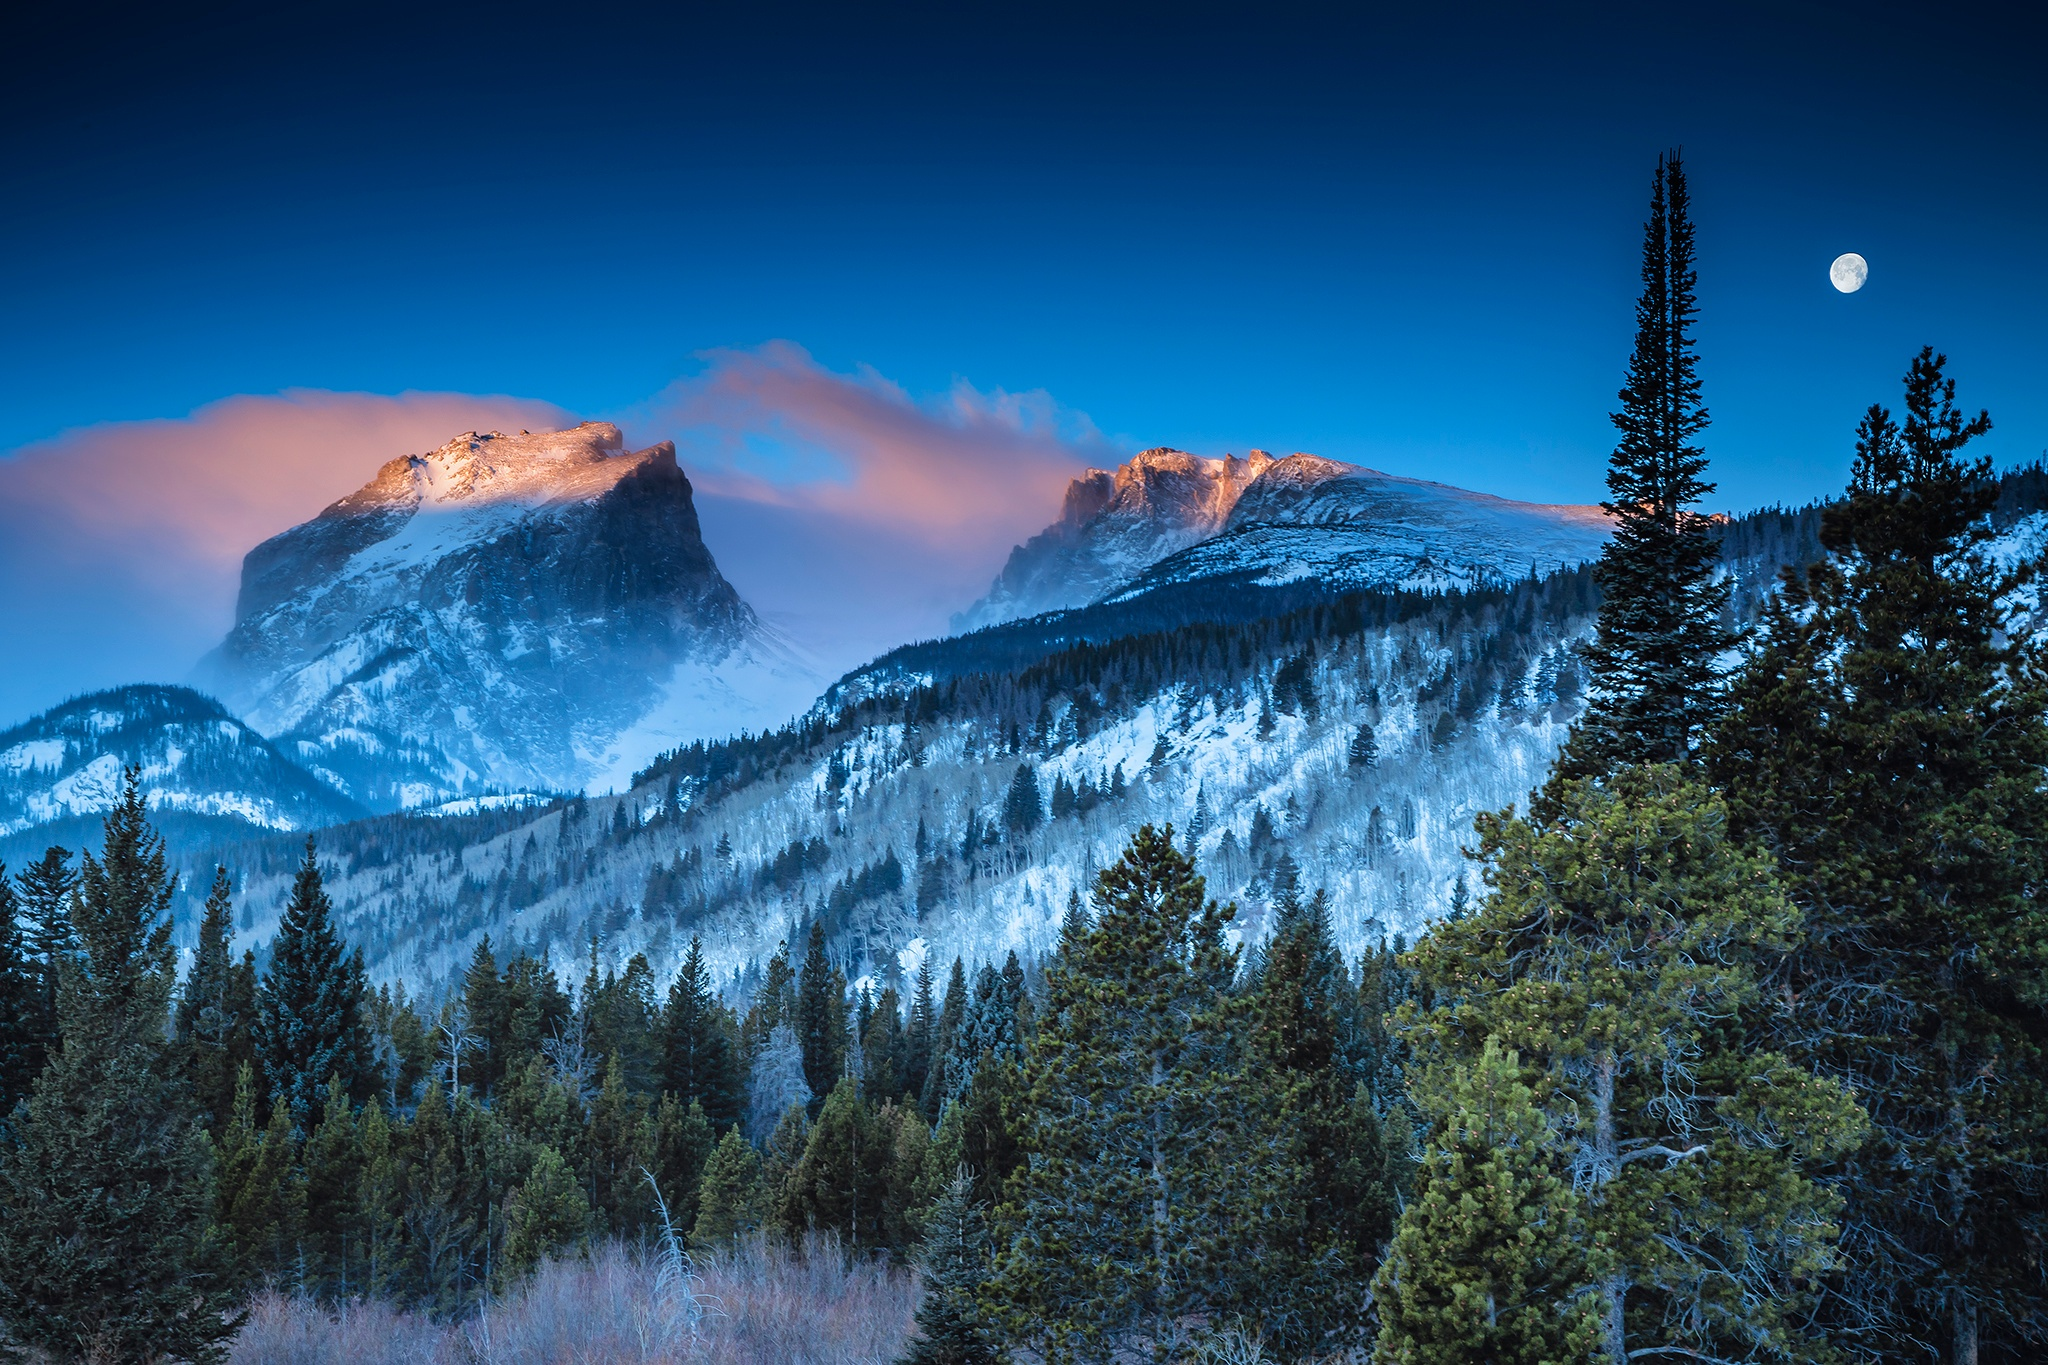 Sublimation at Sunrise by Richard Hahn